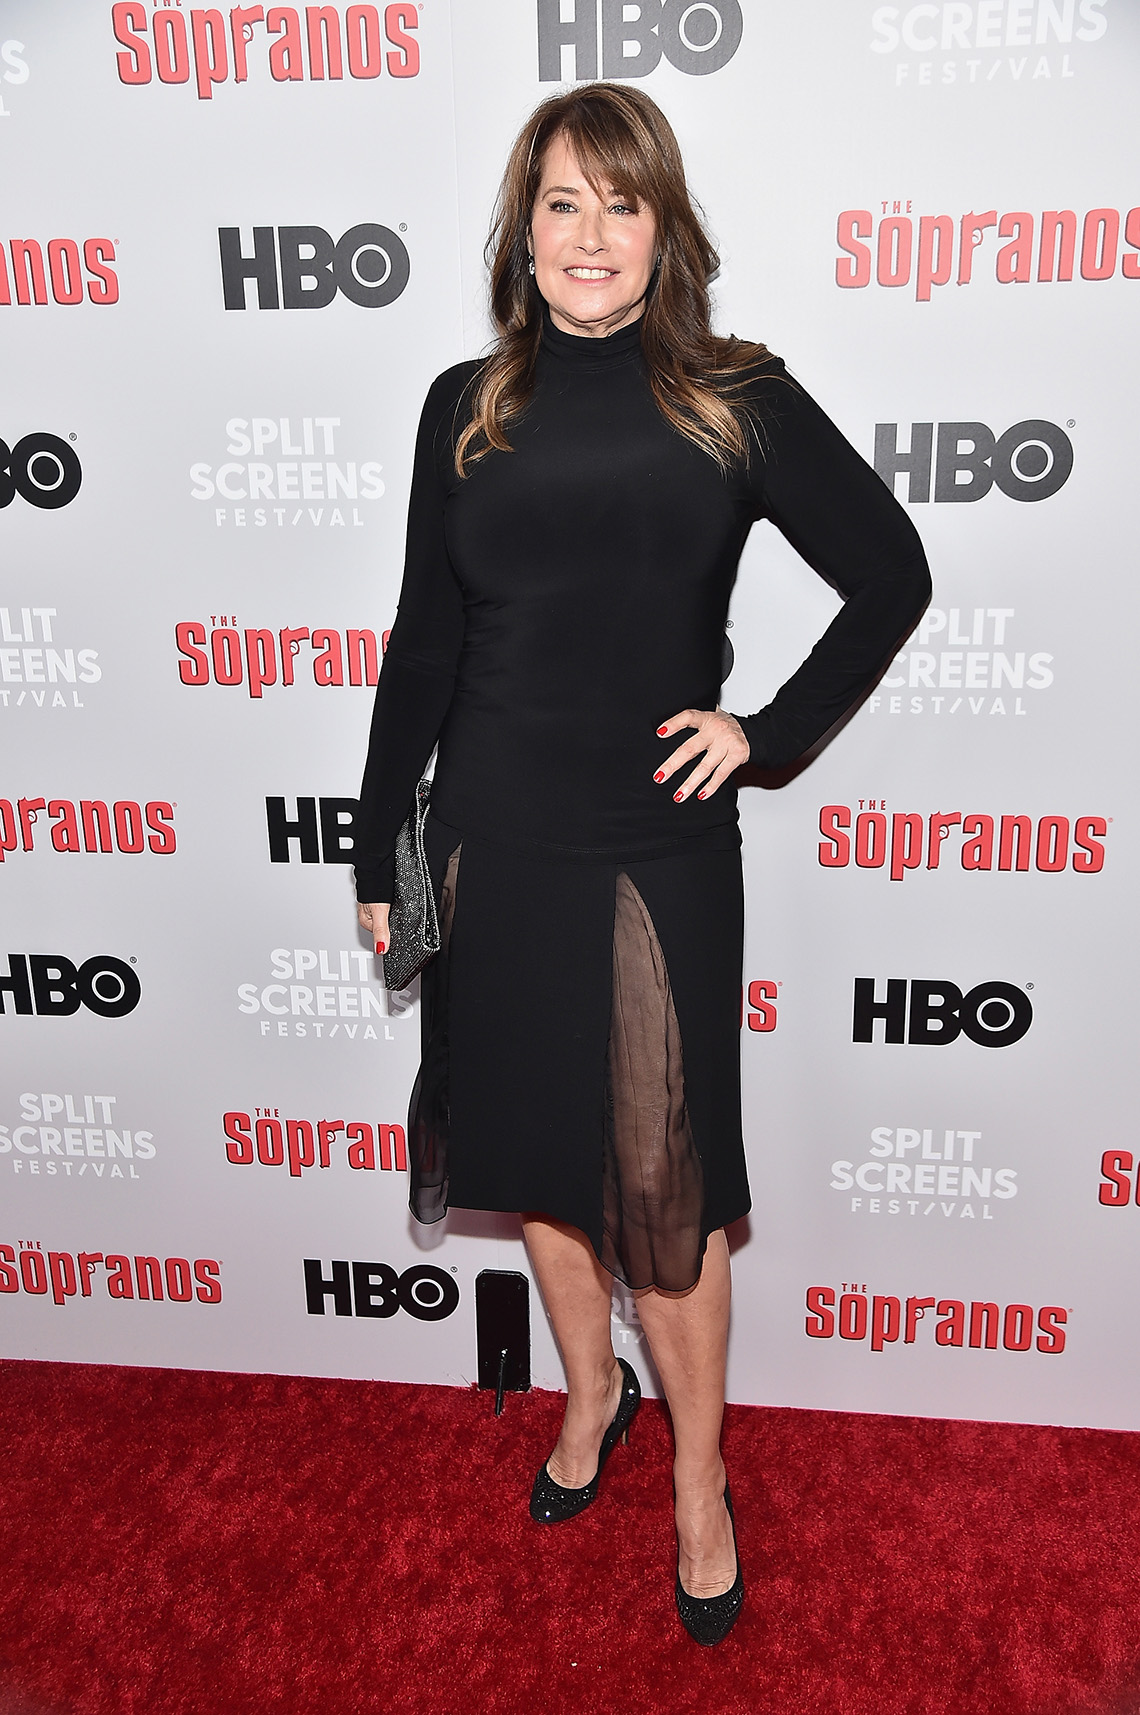 Actress Lorraine Bracco on the red carpet for The Sopranos 20th Anniversary Panel Discussion